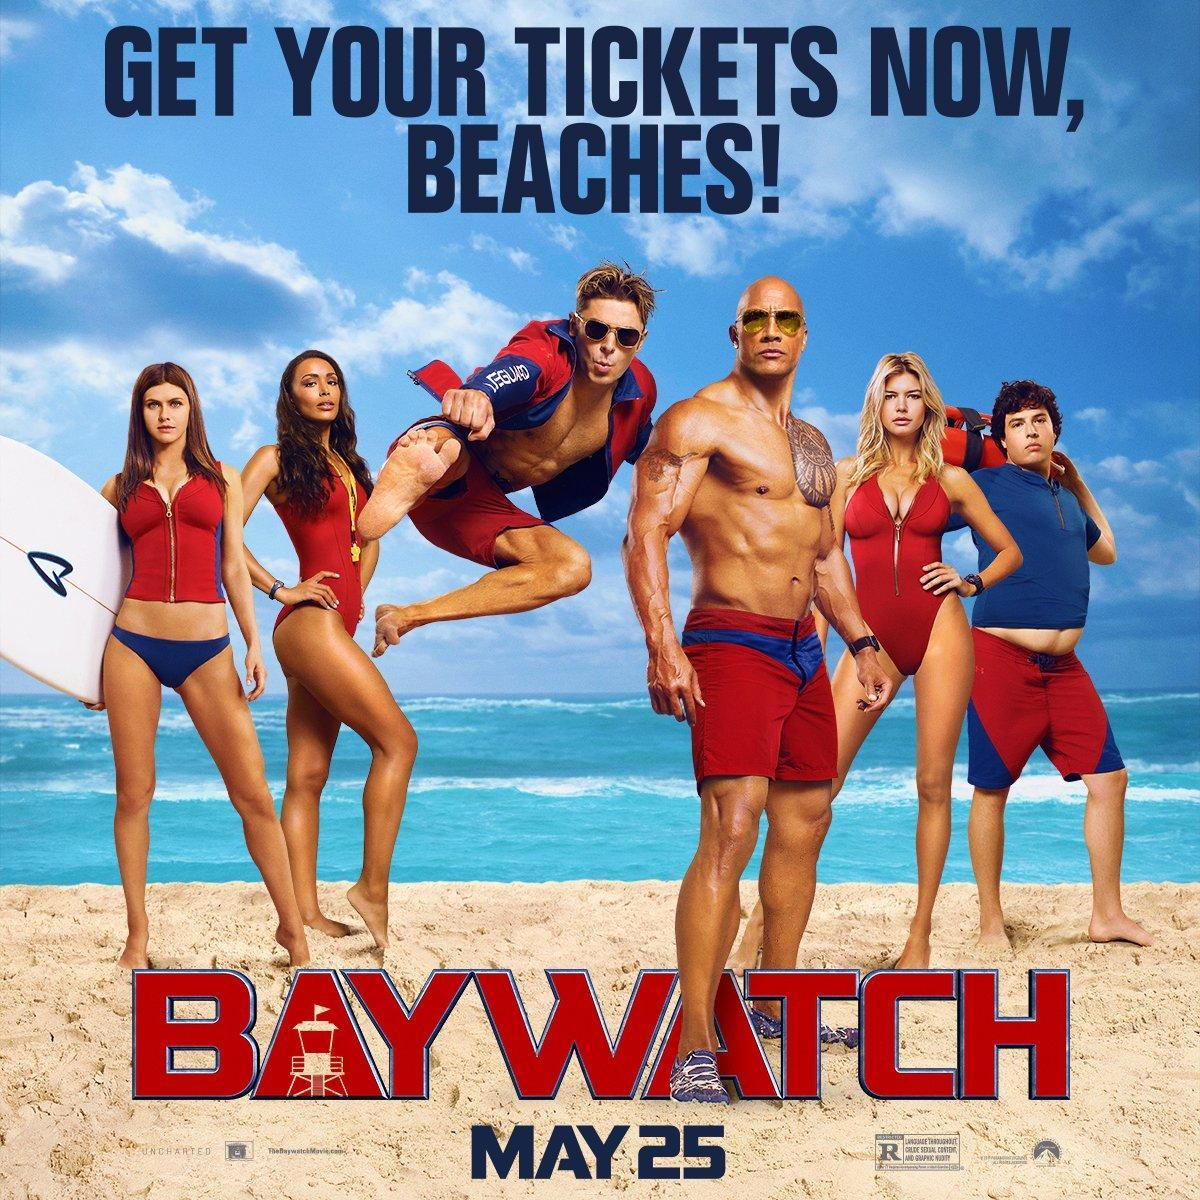 Image Gallery For Baywatch Filmaffinity